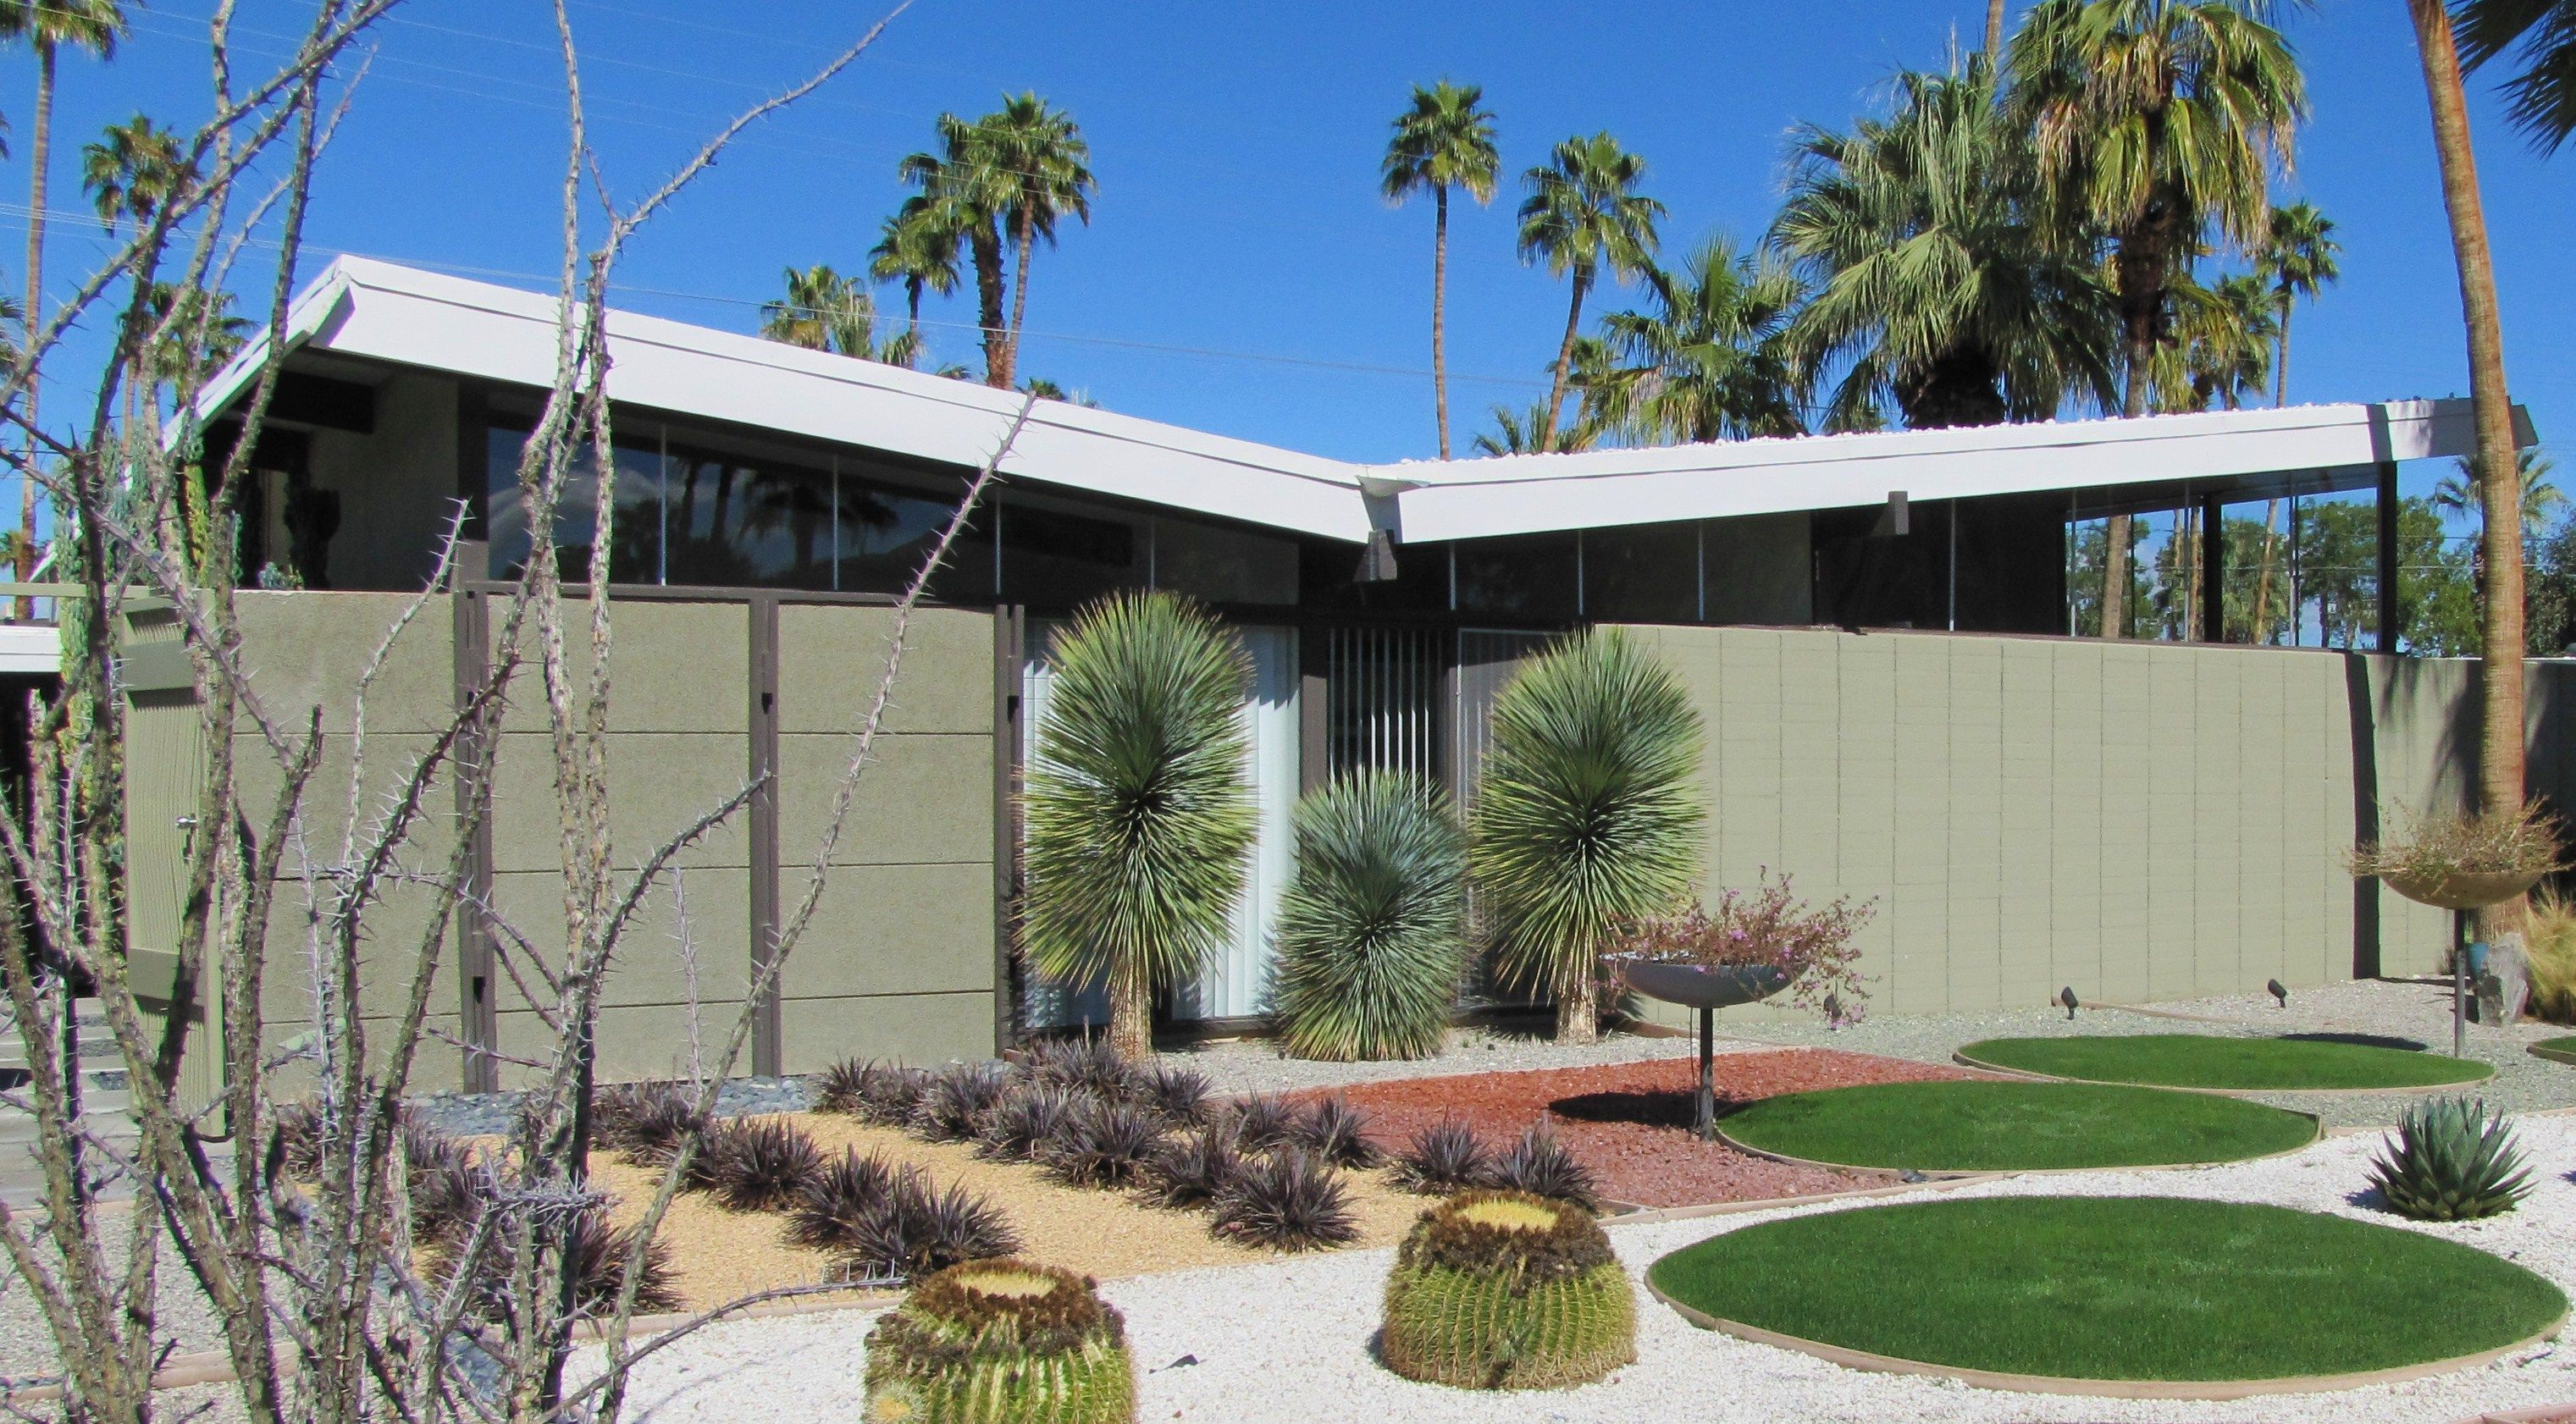 Floating butterfly roof home and interior design ideas for Palm springs mid century modern homes for sale